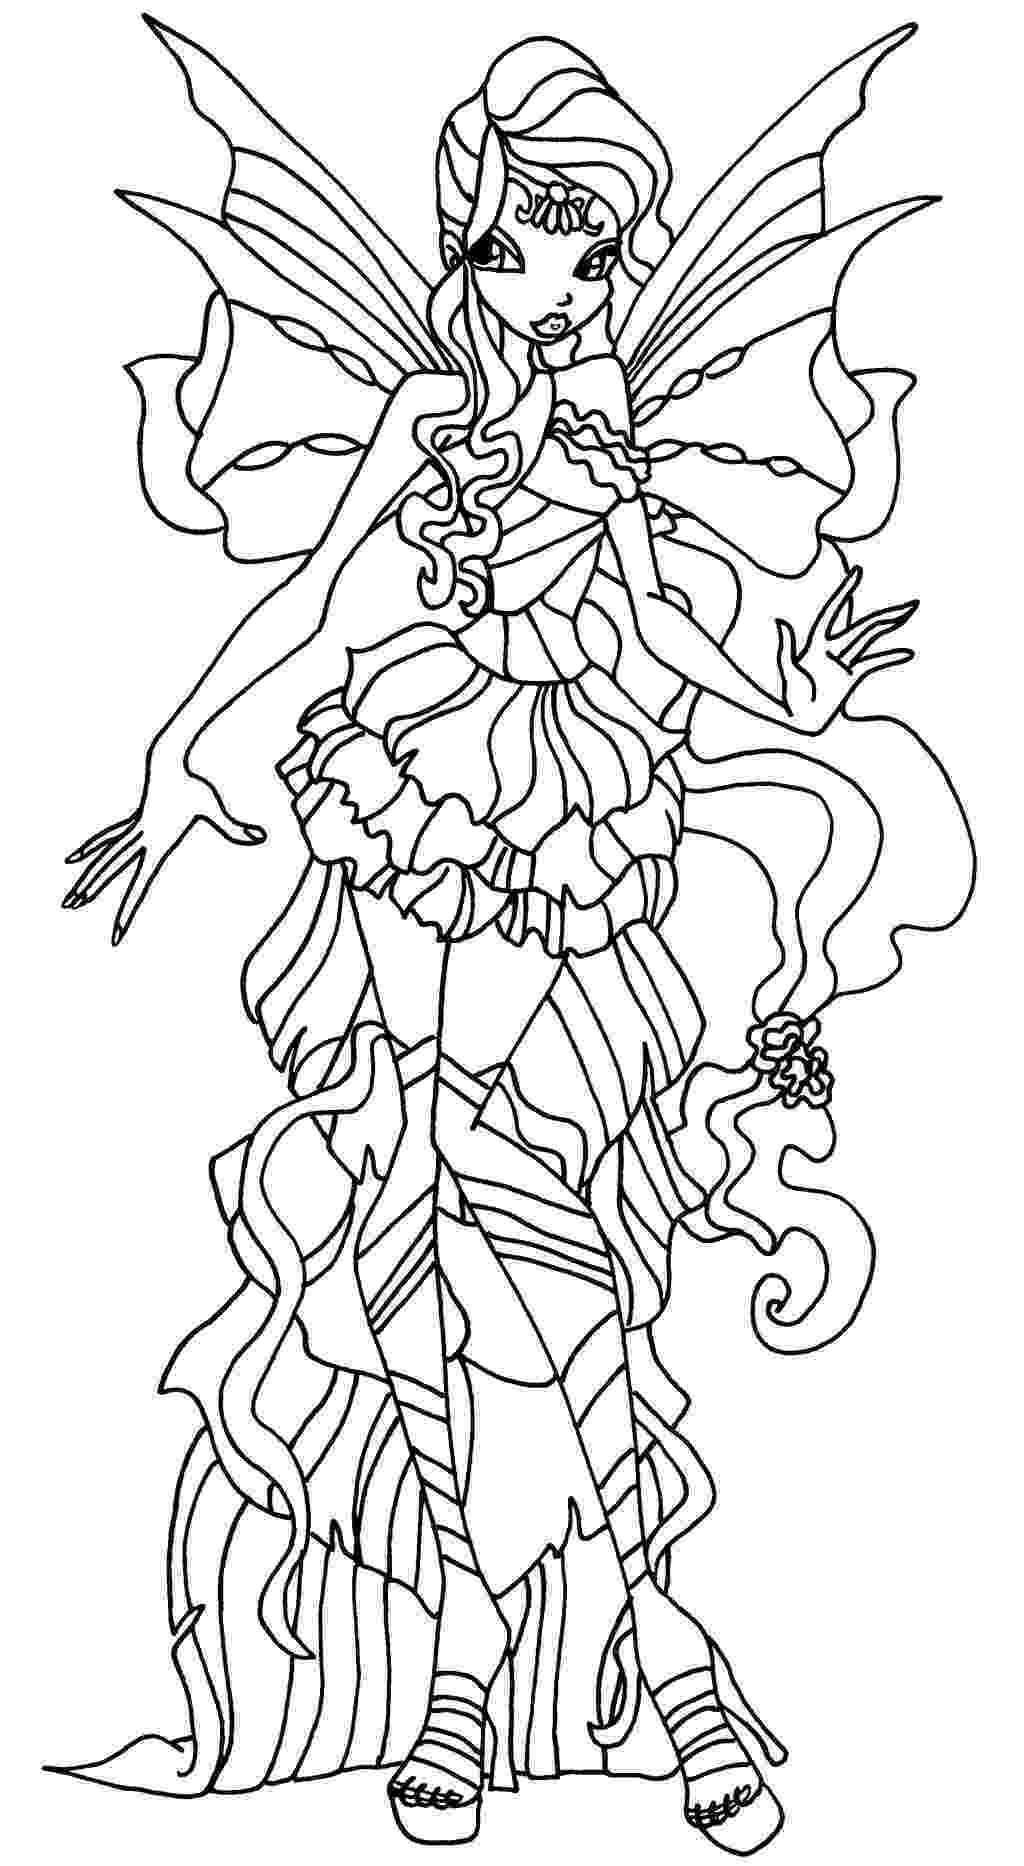 winx club coloring pages layla layla butterflix lineart by crystalkyoshi on deviantart pages winx coloring layla club